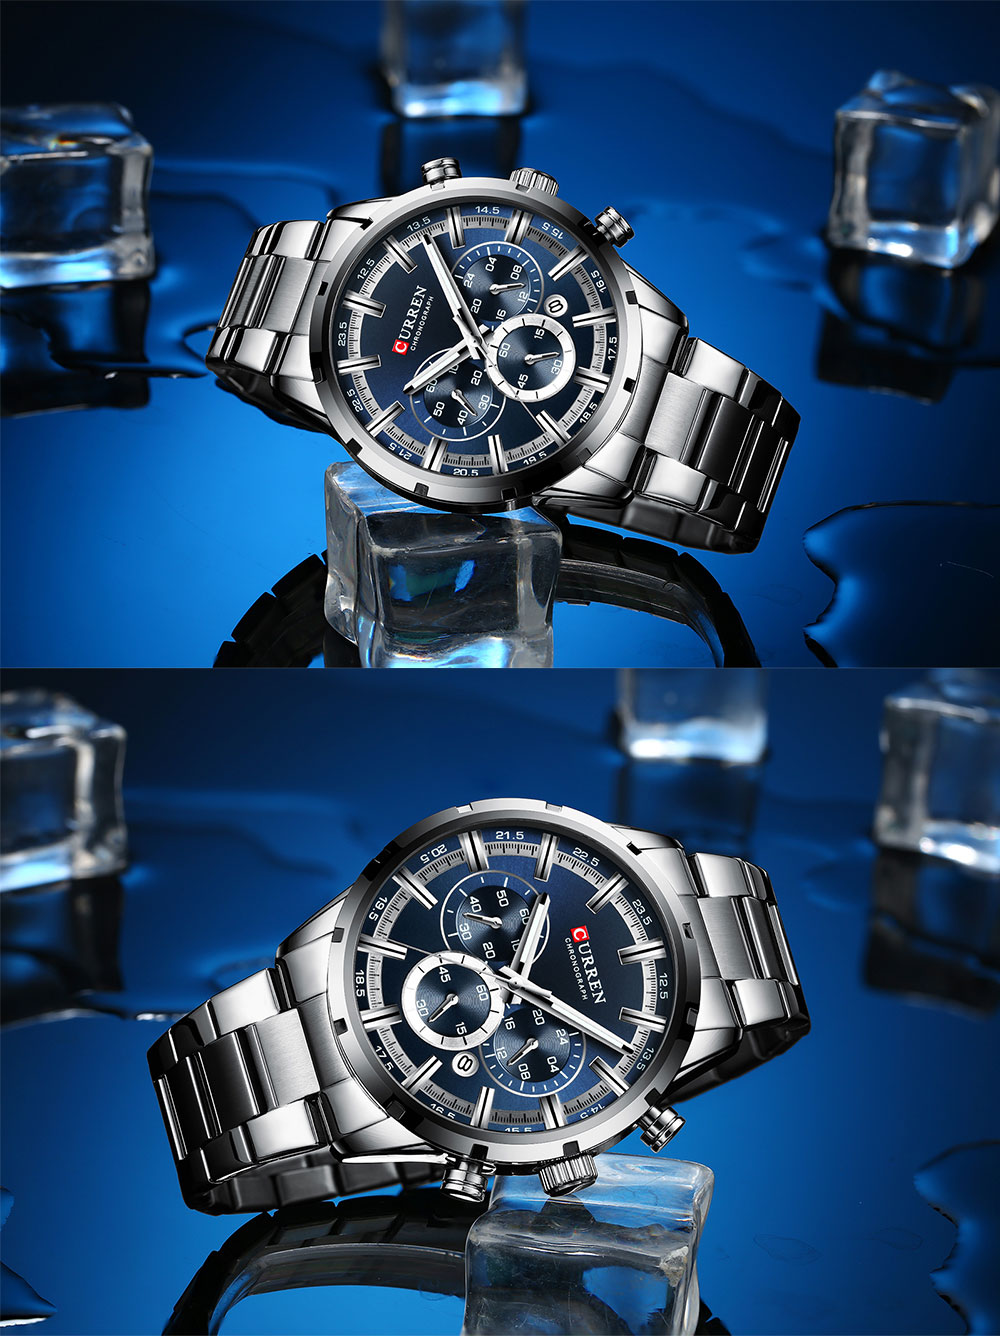 H7f8f8fbc2da94eeea62d3a3bc1530028v CURREN New Fashion Mens Watches Quartz Chronograph